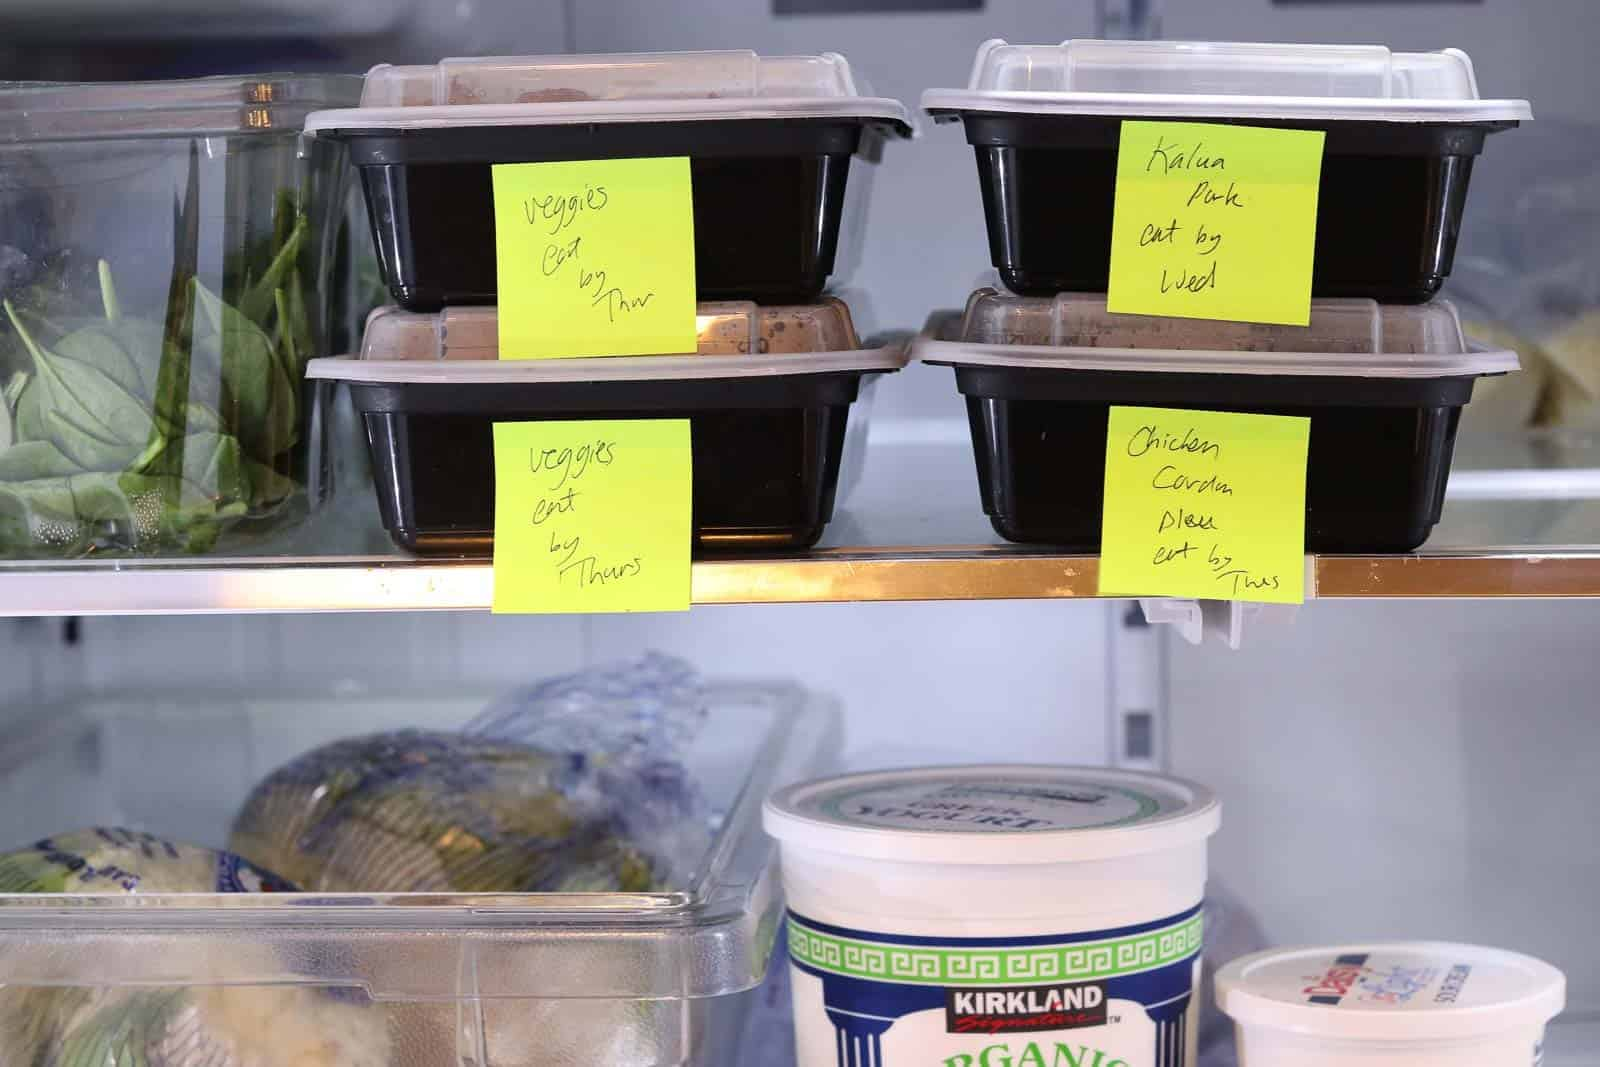 refrigerator with black boxes of food labeled veggies, pork, chicken cordon bleu, yogurt, cauliflower, sour cream from Gourmet Done Skinny